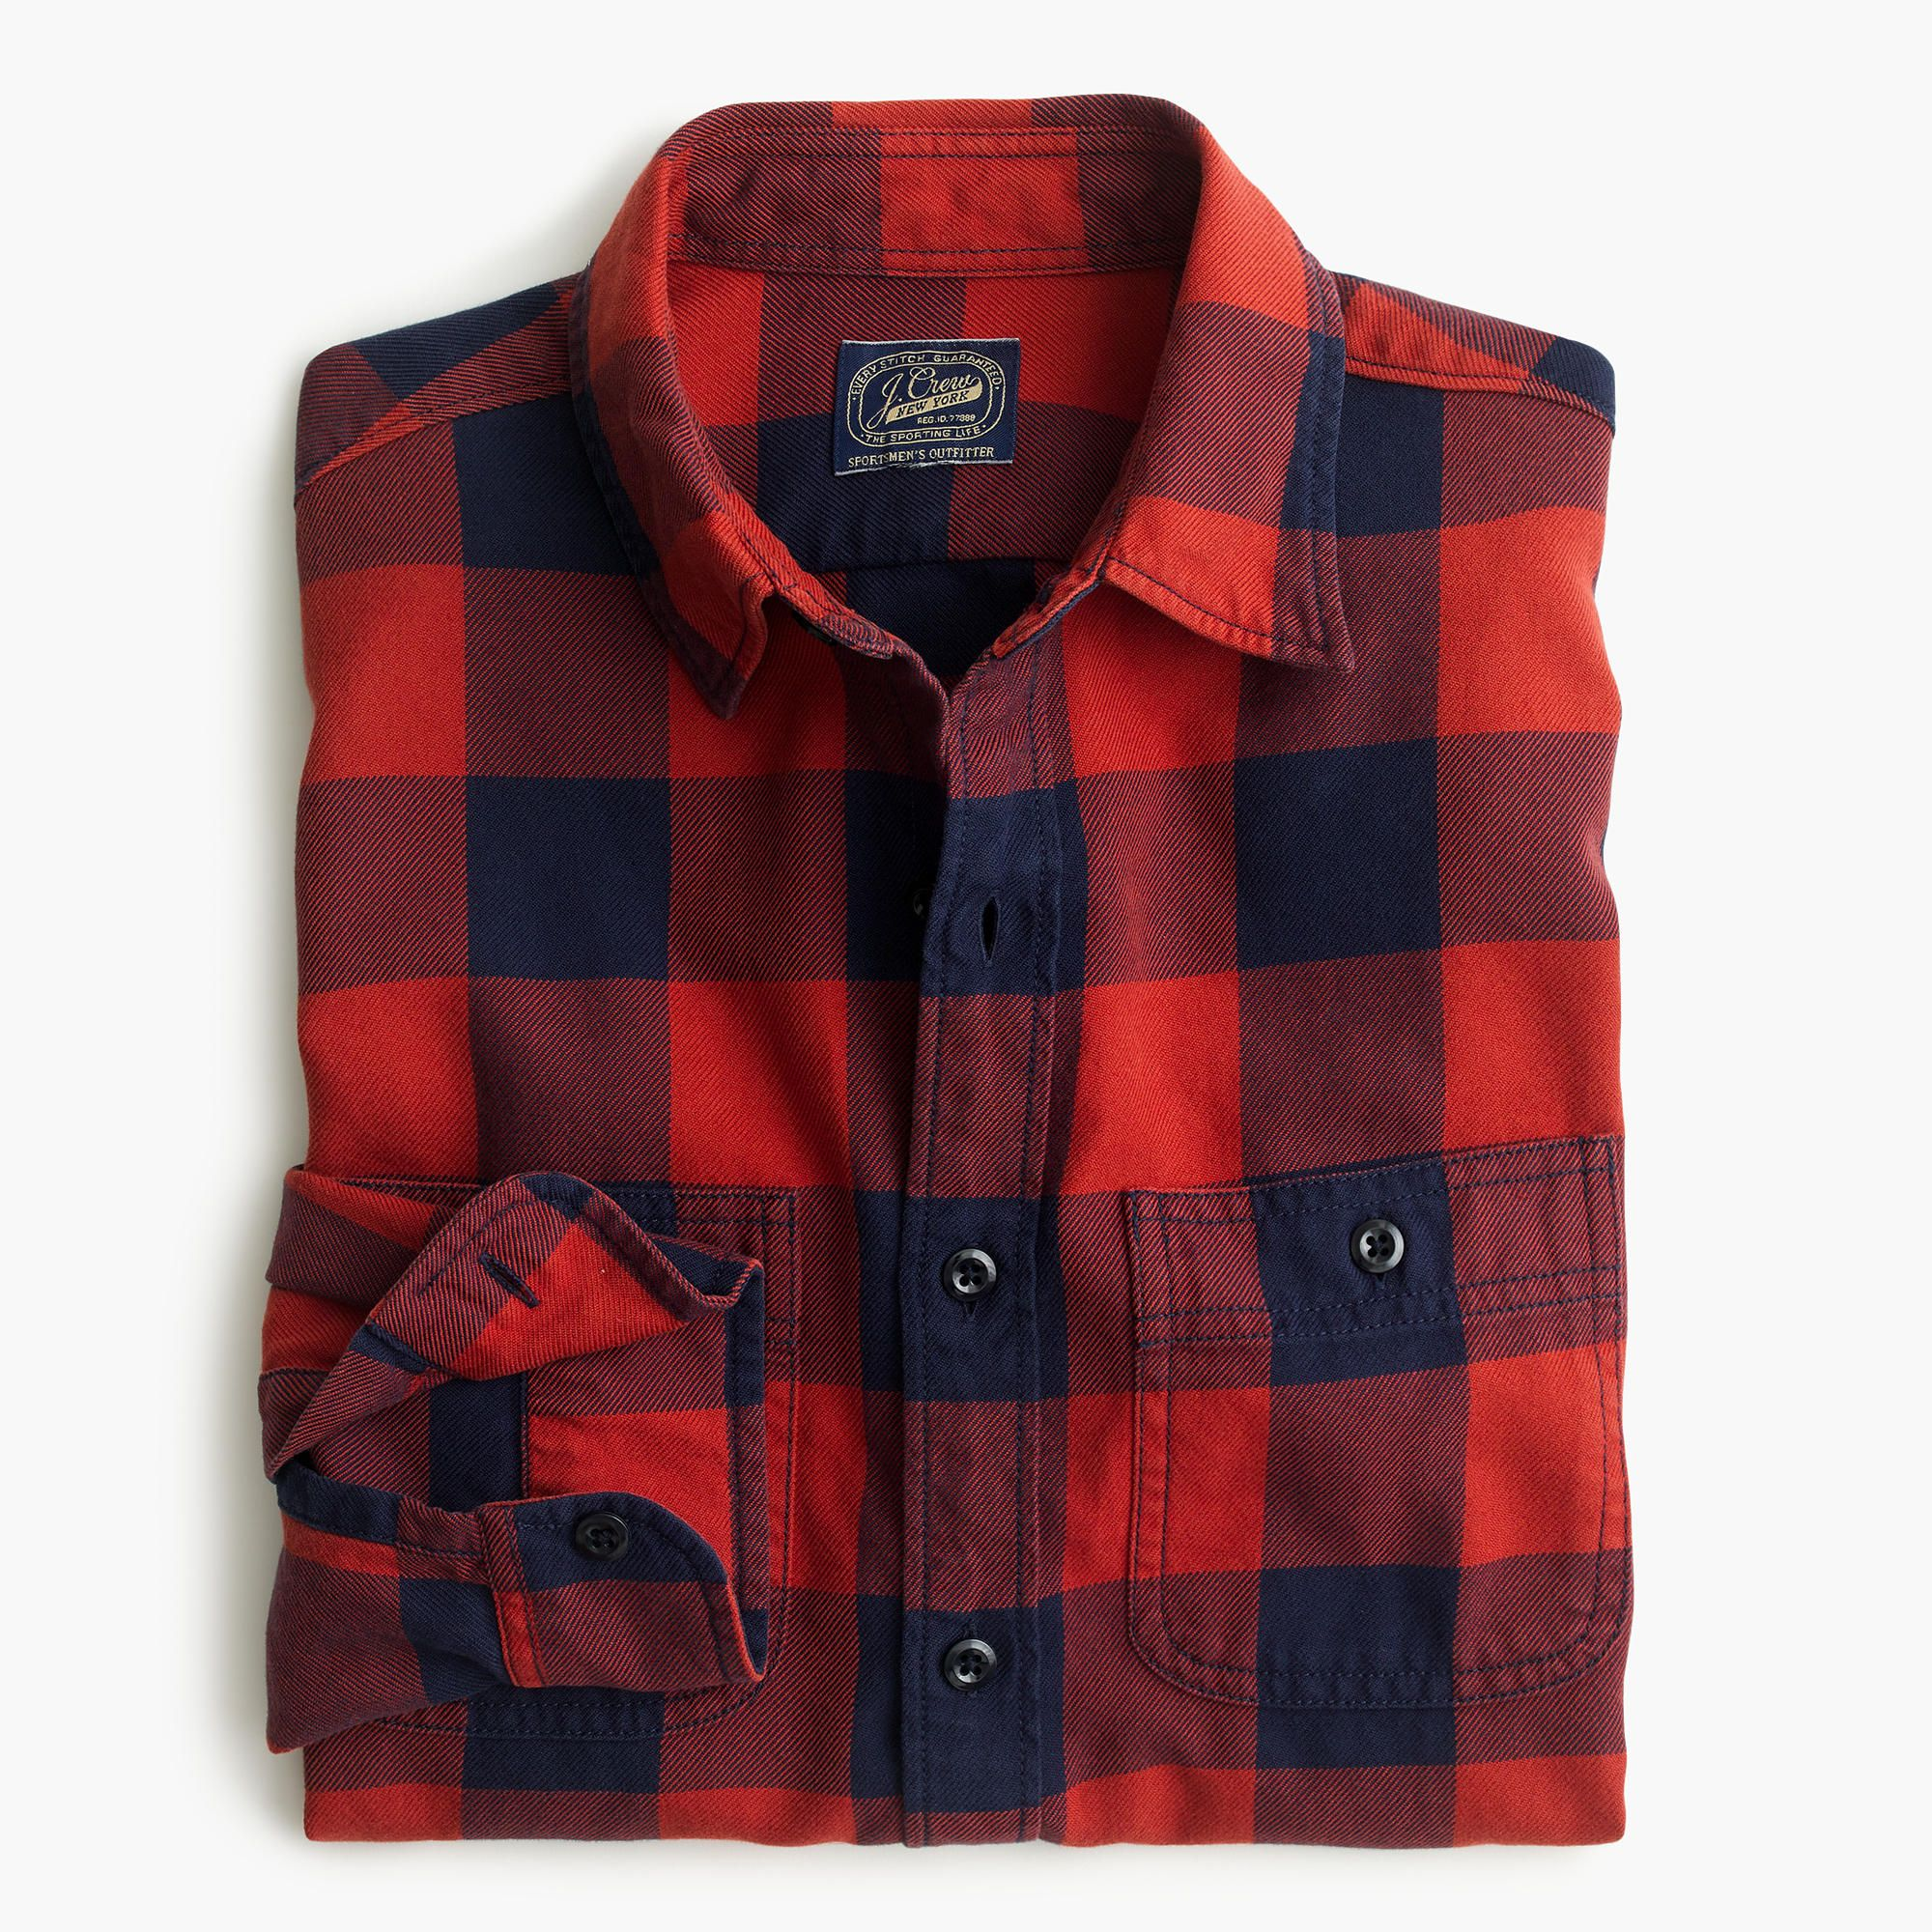 Flannel jackets with hood  Flannel shirts donut get much more comfortable or classic than this